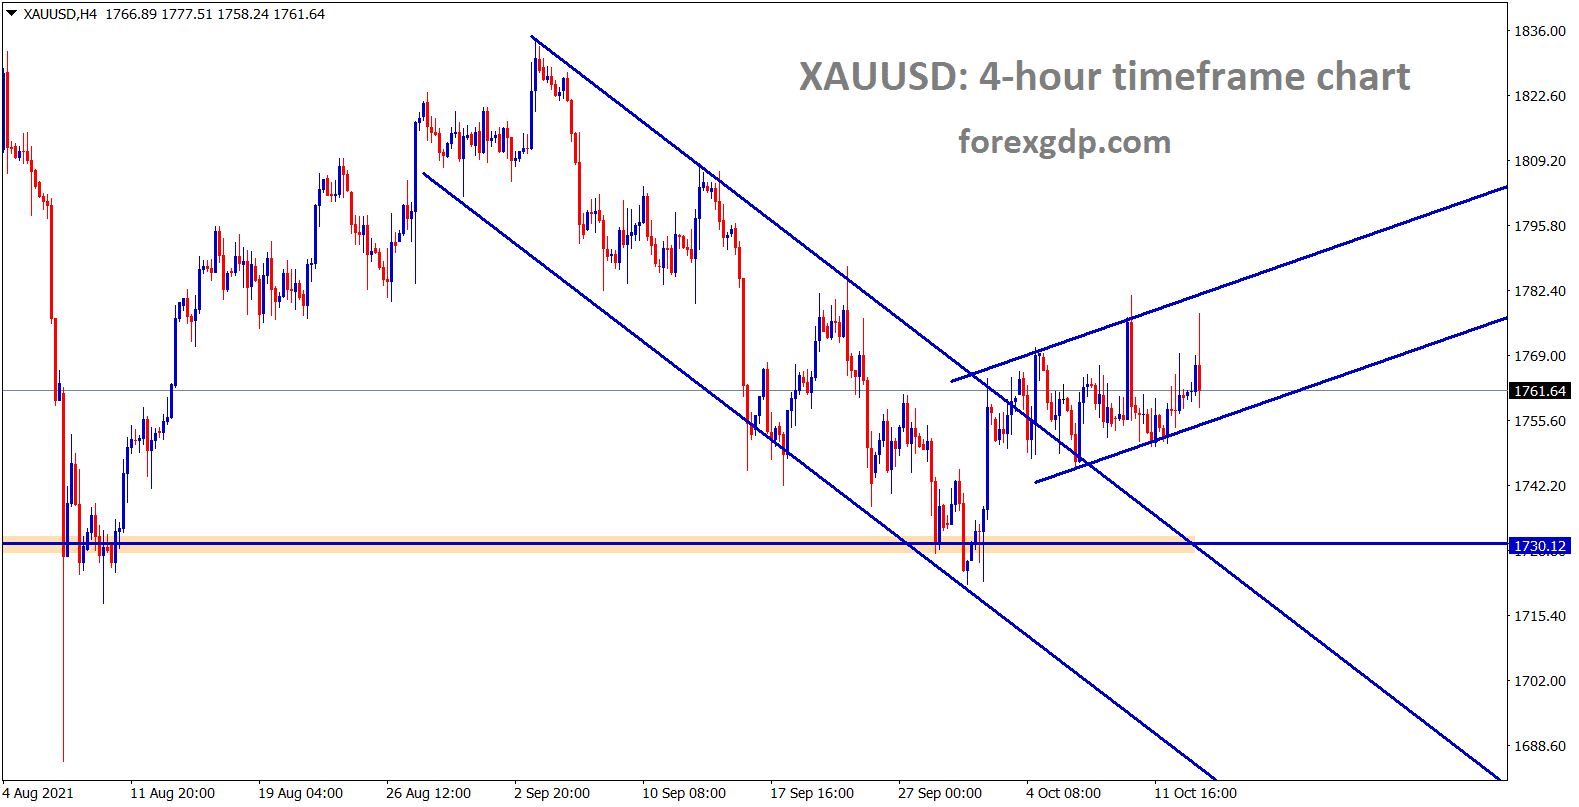 Gold XAUUSD price is still consolidating between the minor ascending channel range wait for the breakout